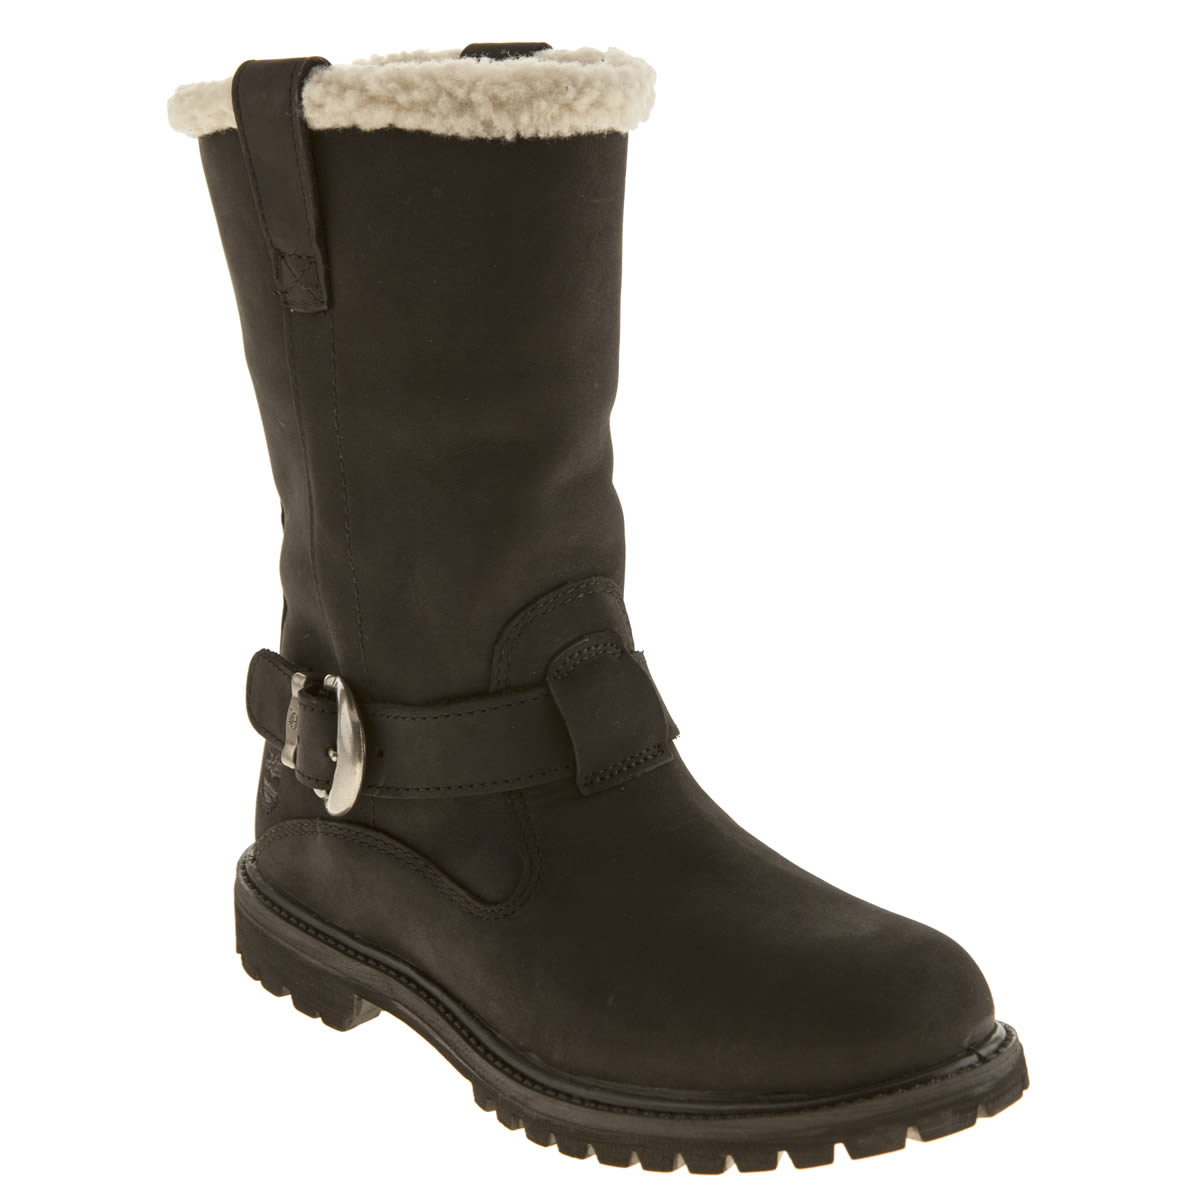 Original Timberland Womens Chillberg Over The Chill Winter Boots